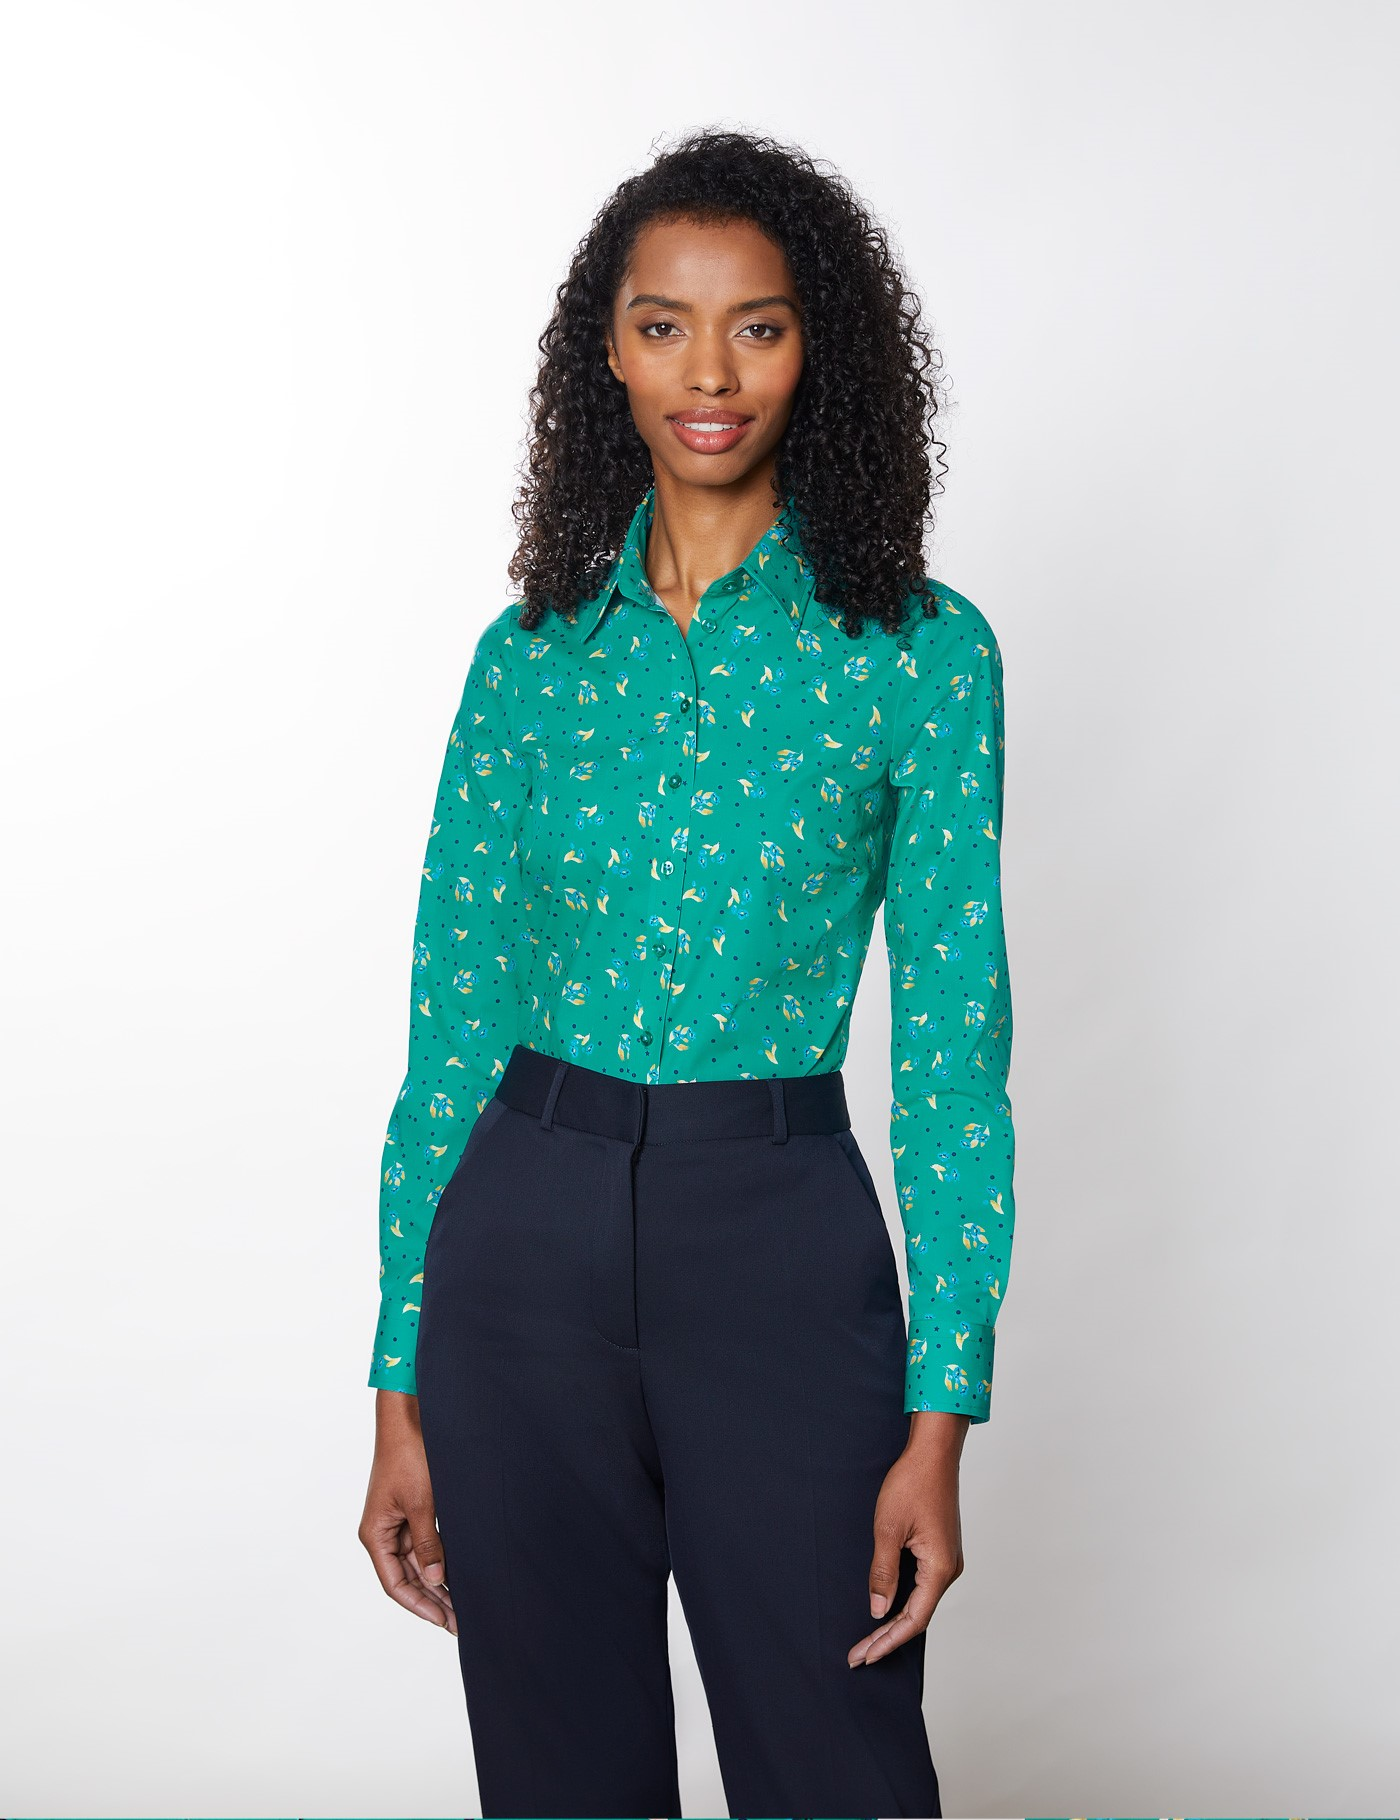 Women's Floral Semi-Fitted Cotton Stretch Shirt In Green/Yellow | Size 12 | Hawes & Curtis